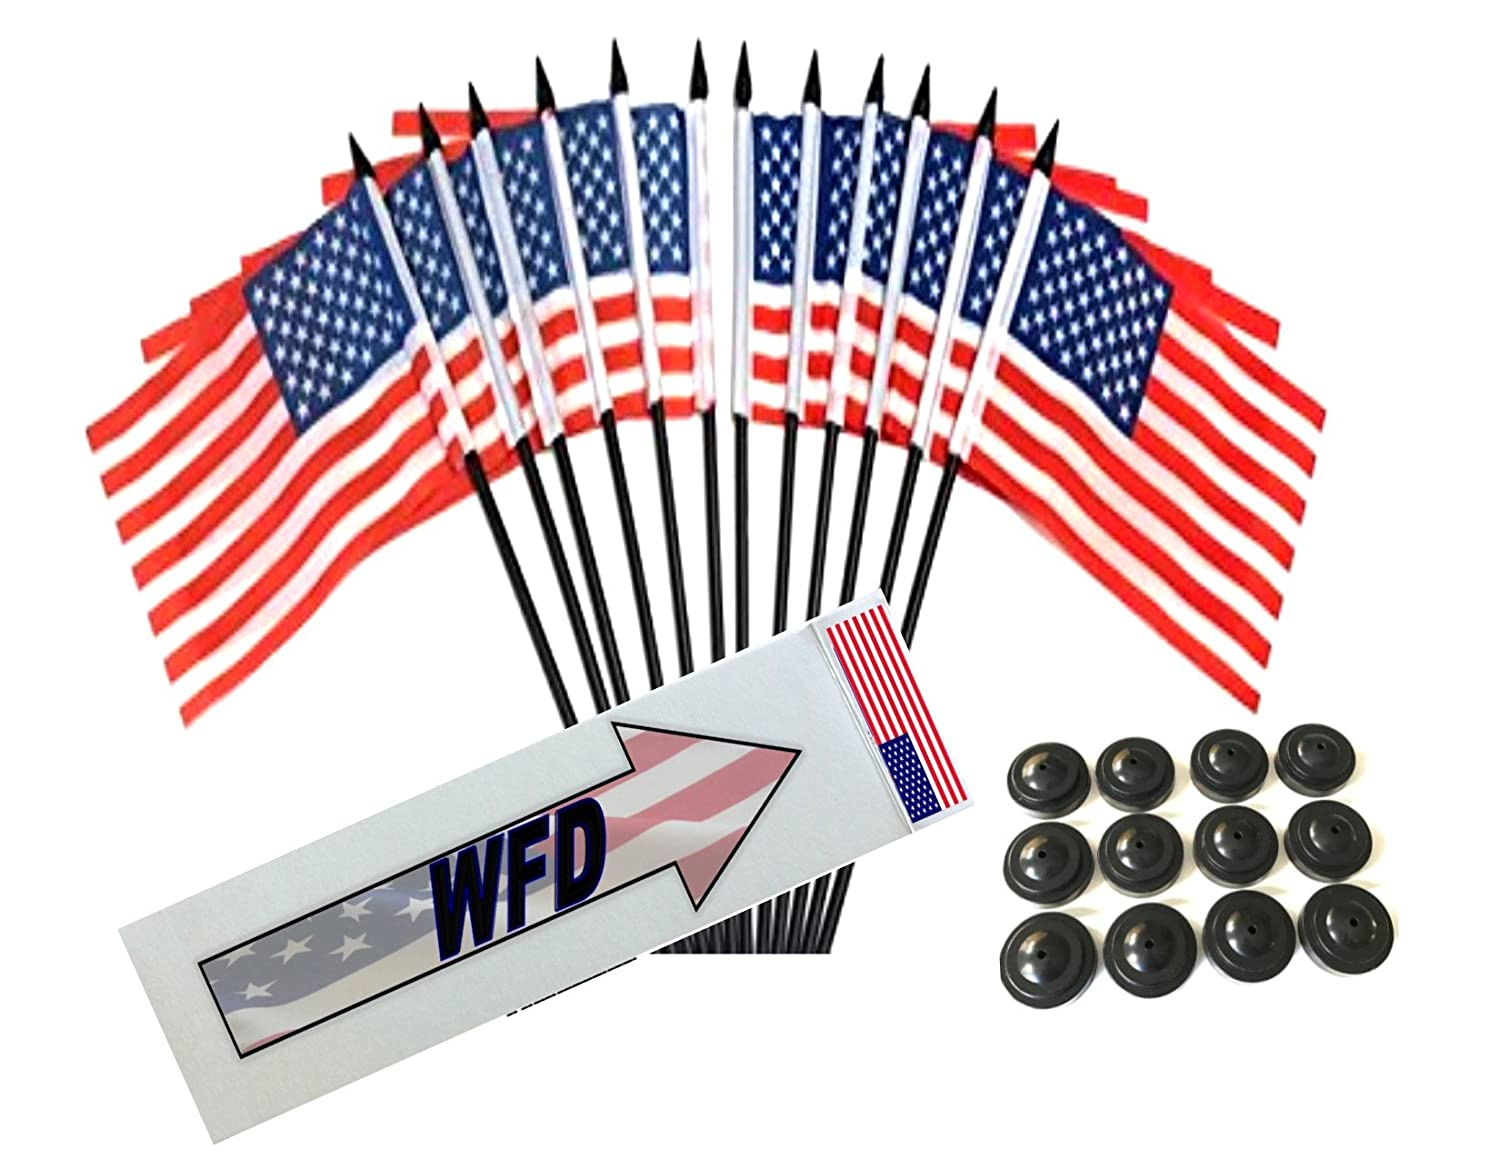 BOX of 12 United States 4x6 Miniature Desk /& Table Flags With 12 Flag Stands 4x6 United States Small Mini Stick Flags